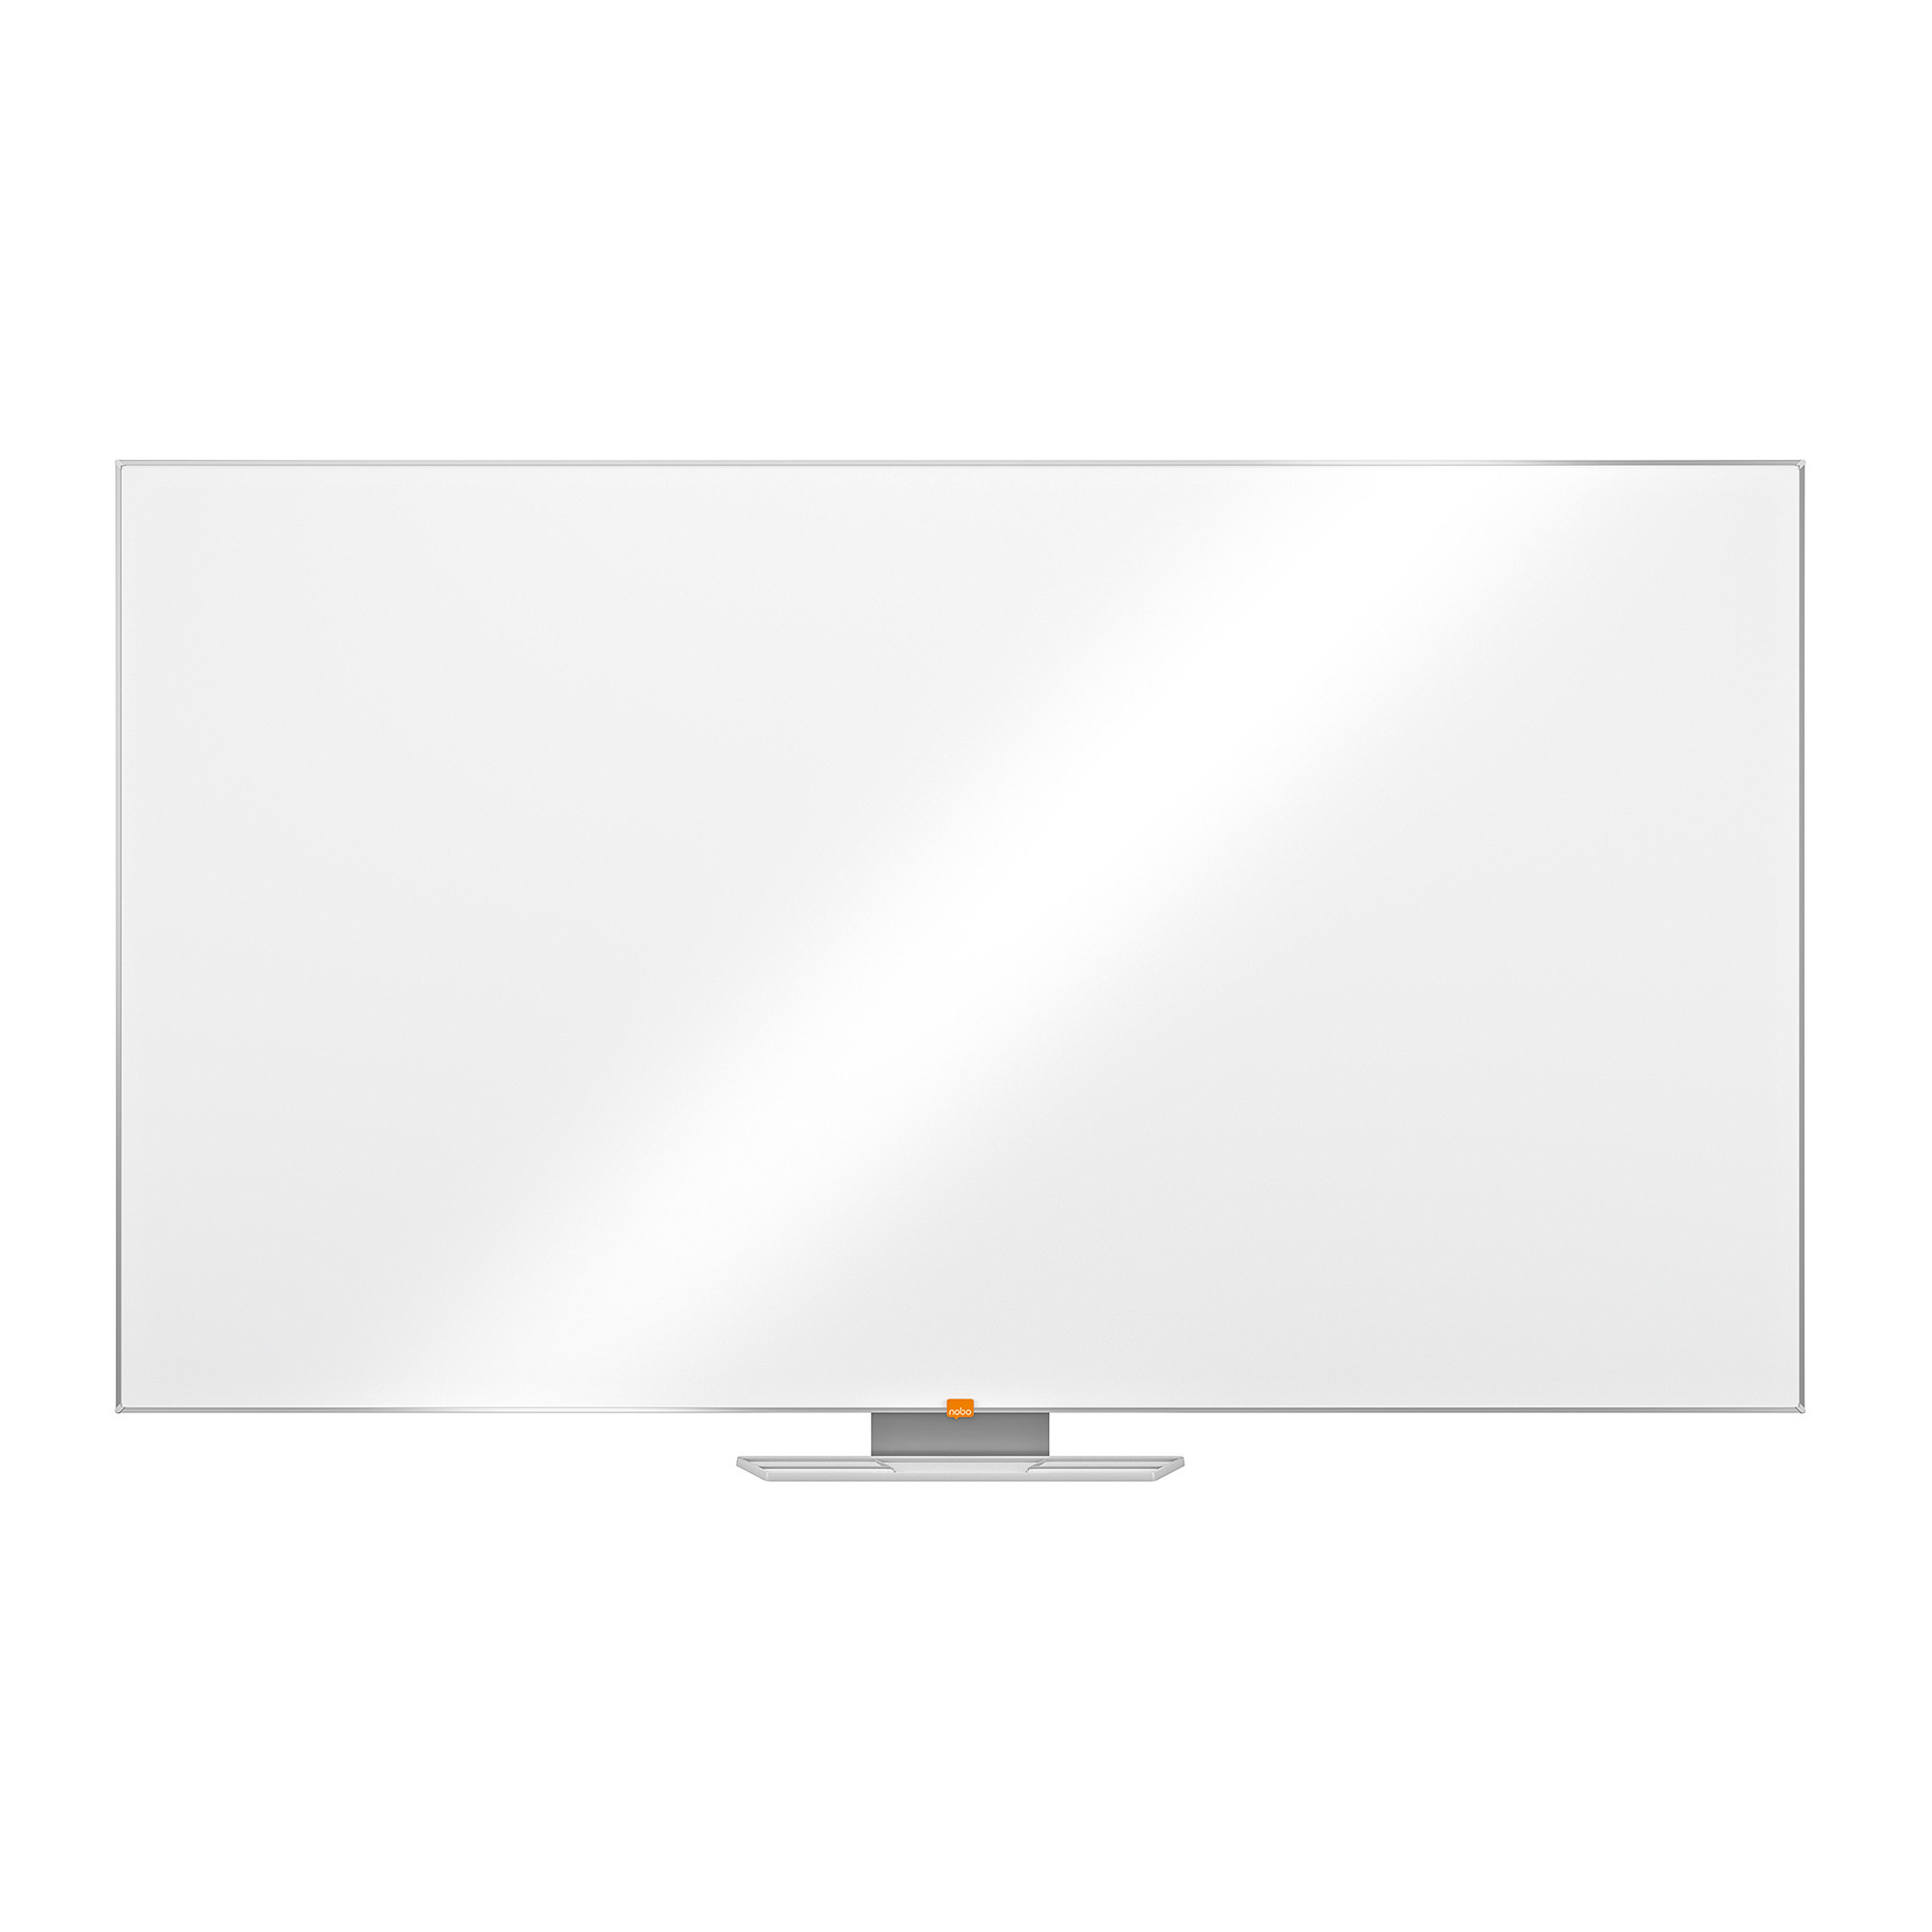 Nobo Widescreen 85 inch Whiteboard Melamine Surface Magnetic W1894xH1071 White Ref 1905295